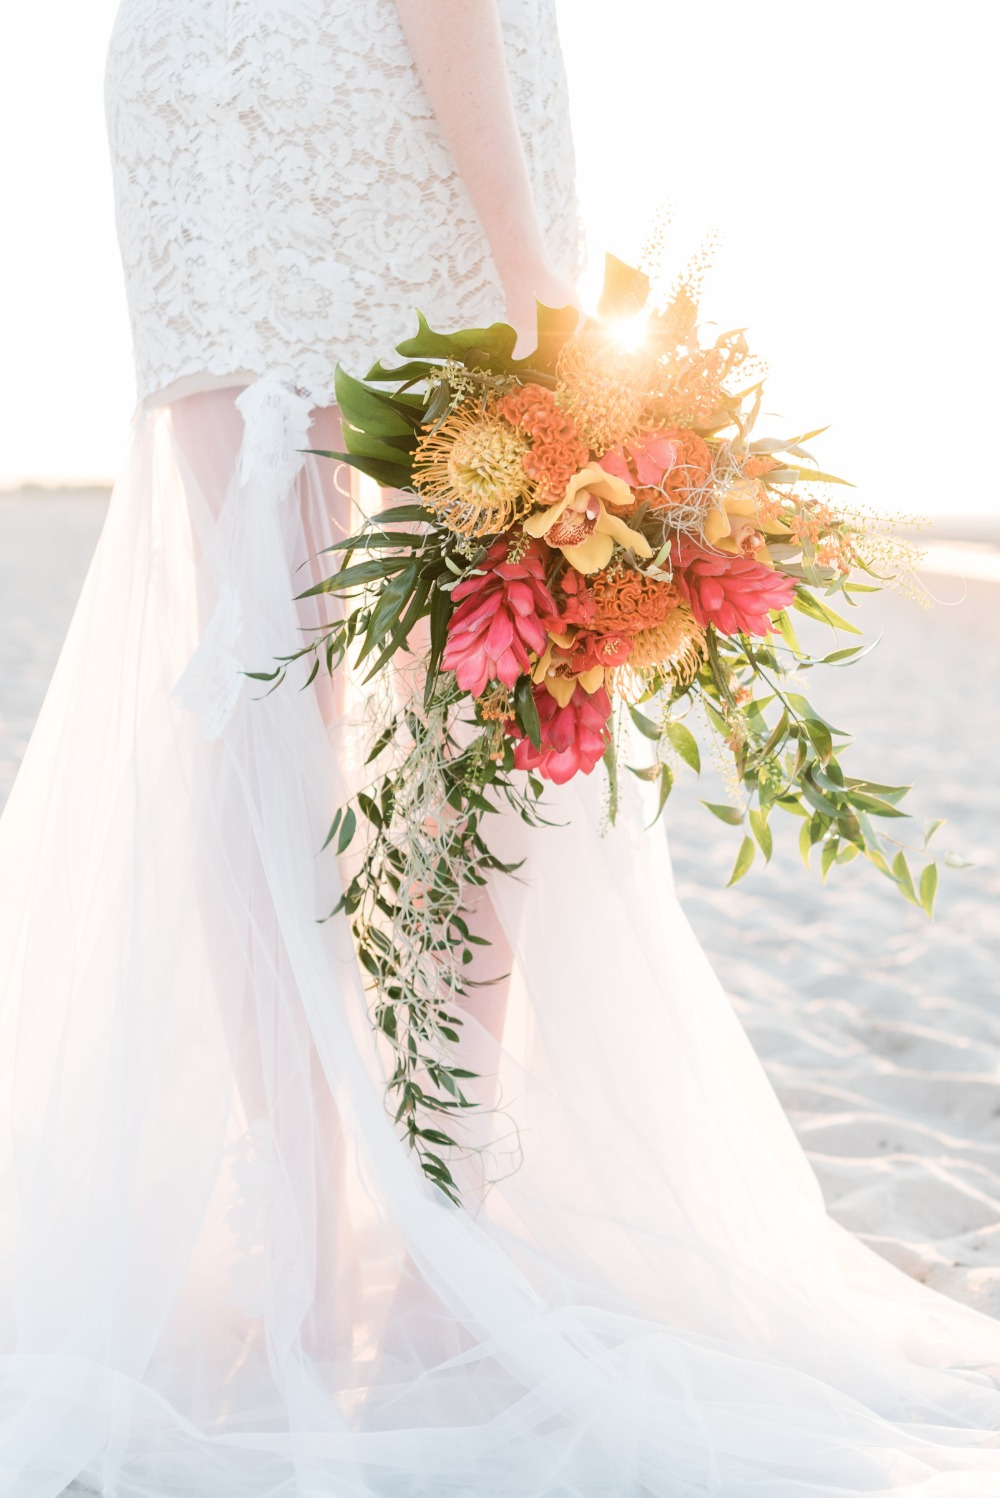 Blog - Tropical Beach Wedding Ideas from Germany